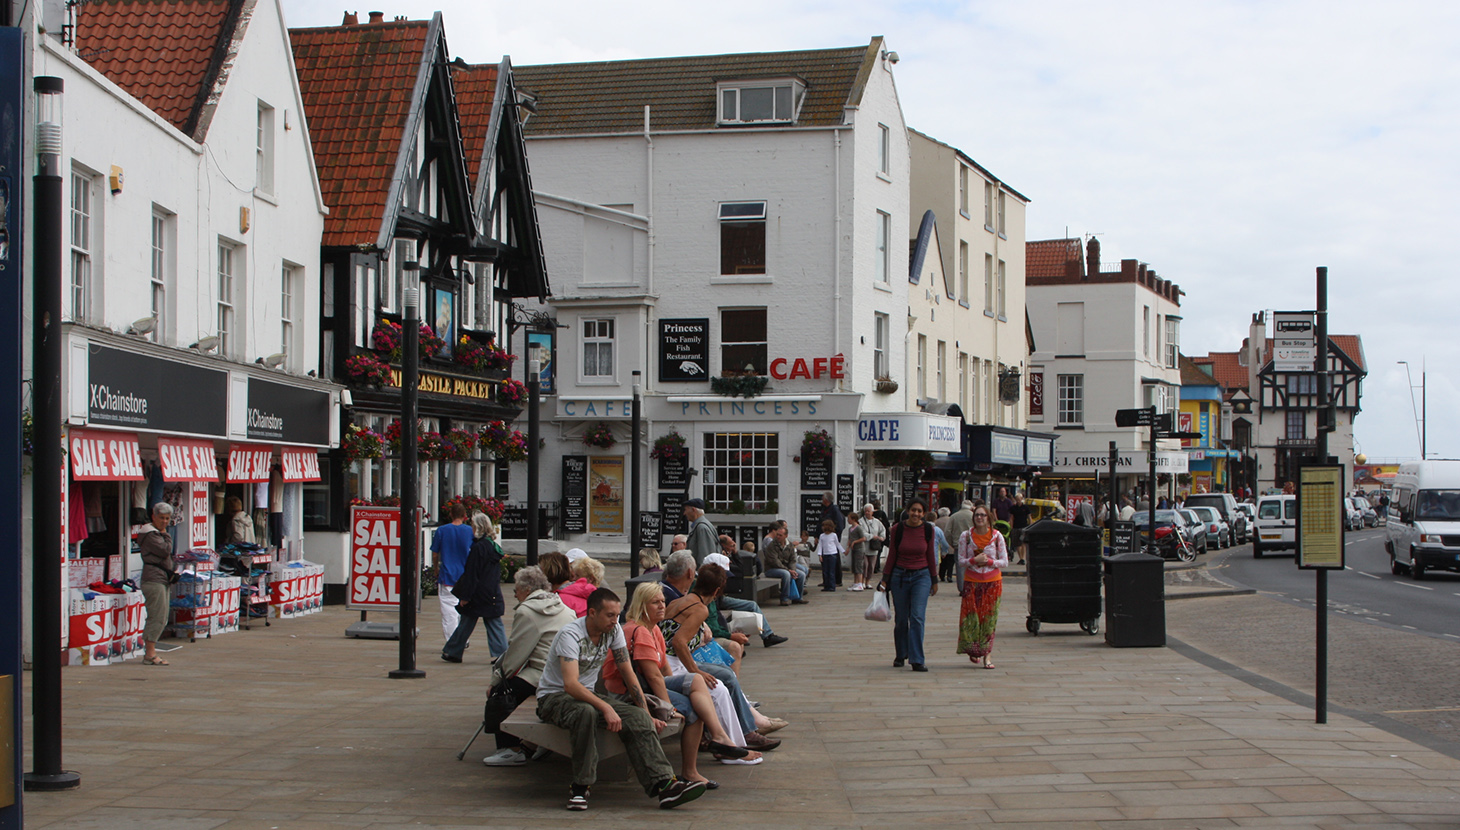 Scarborough recently announced as one of the government's 10 'social mobility hot spots'.